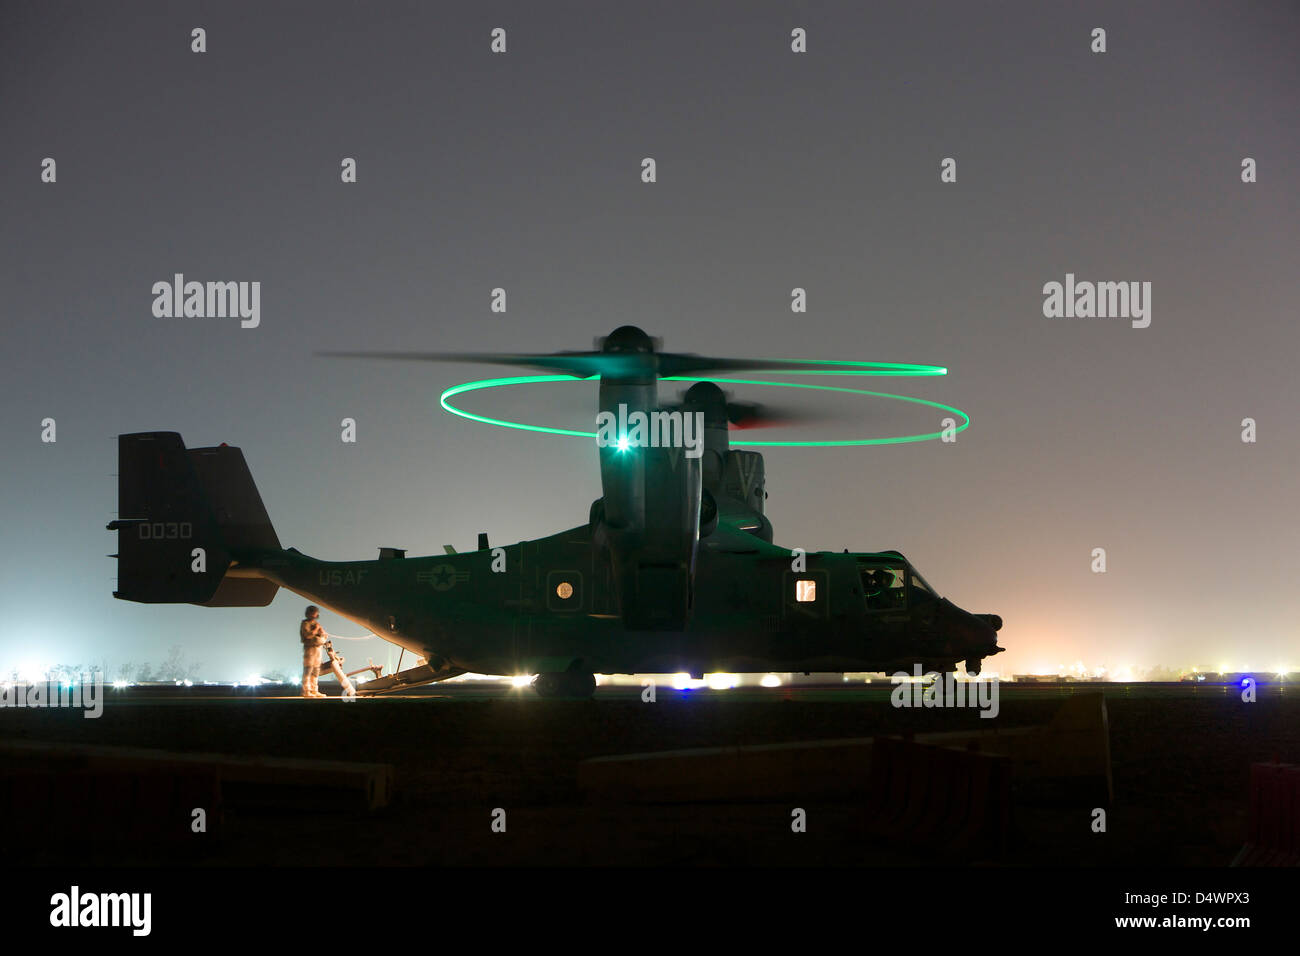 A special forces CV-22 Osprey with rotor lights on, preparing to take off on a mission over Northern Iraq. - Stock Image